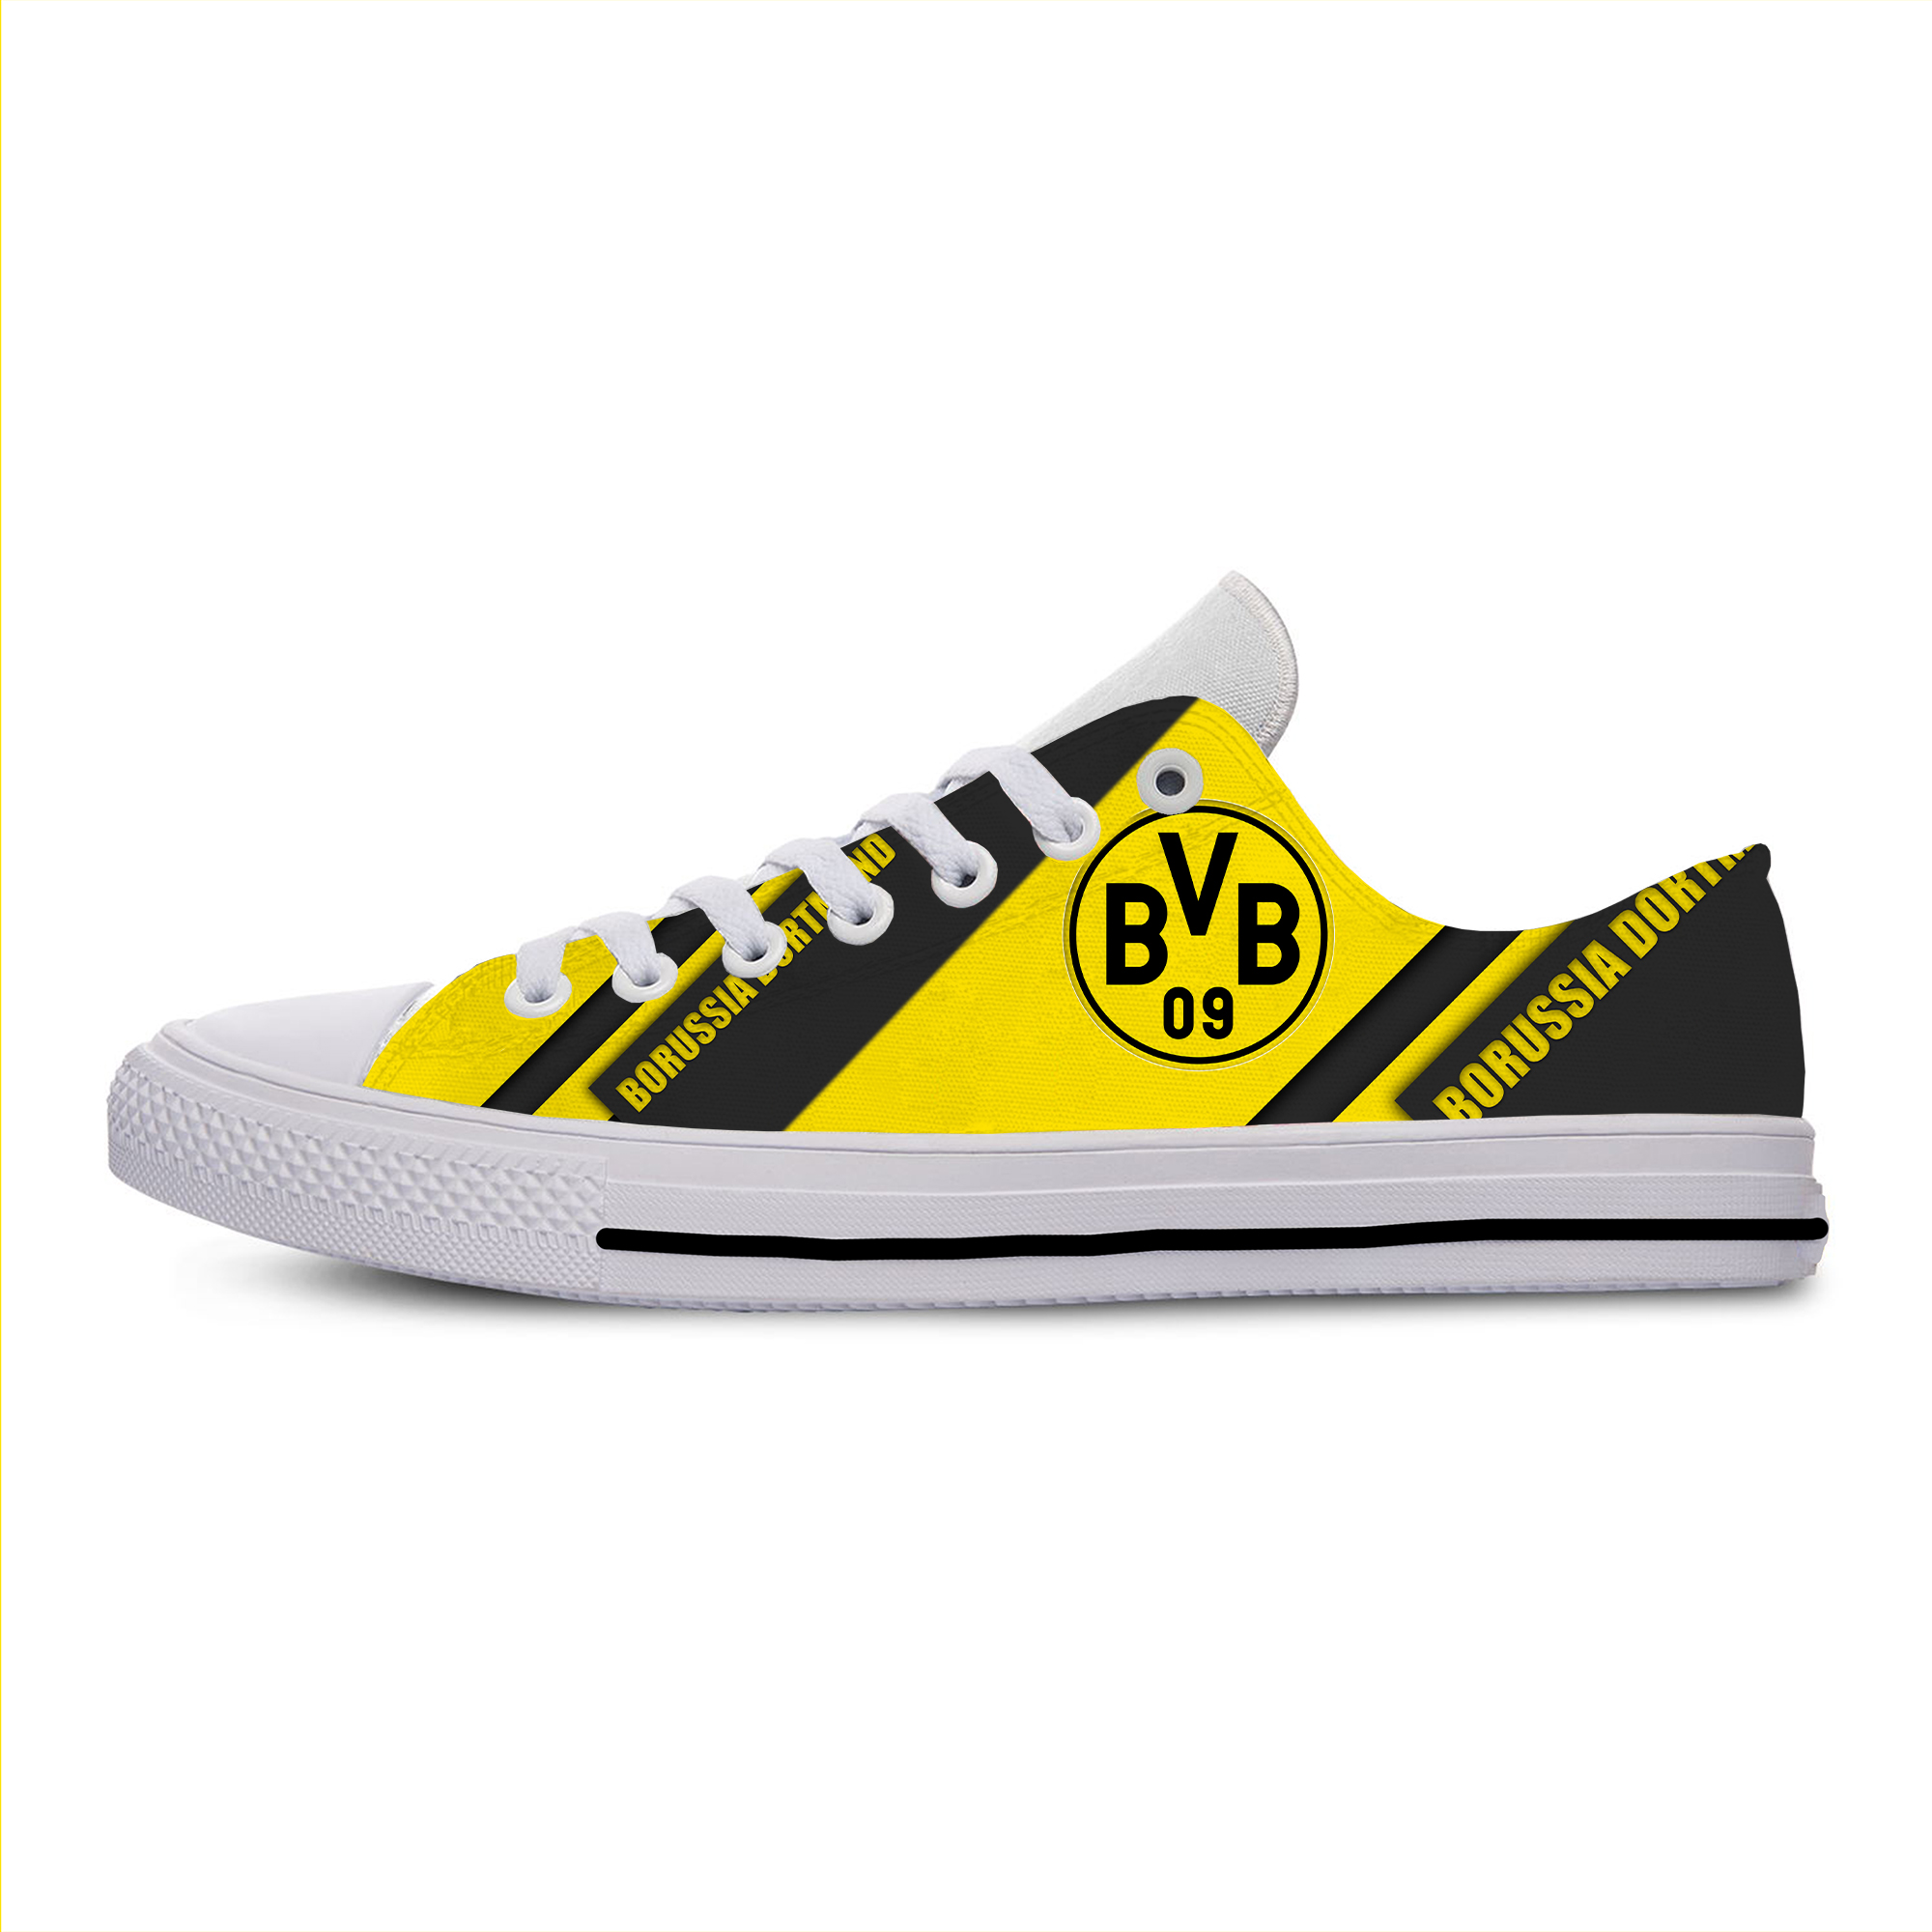 Borussia Dortmund Lightweight Soccer F.C. Fans Fashion Men/Women Football Culb Breathable Shoes Casual Classic Canvas Sneakers